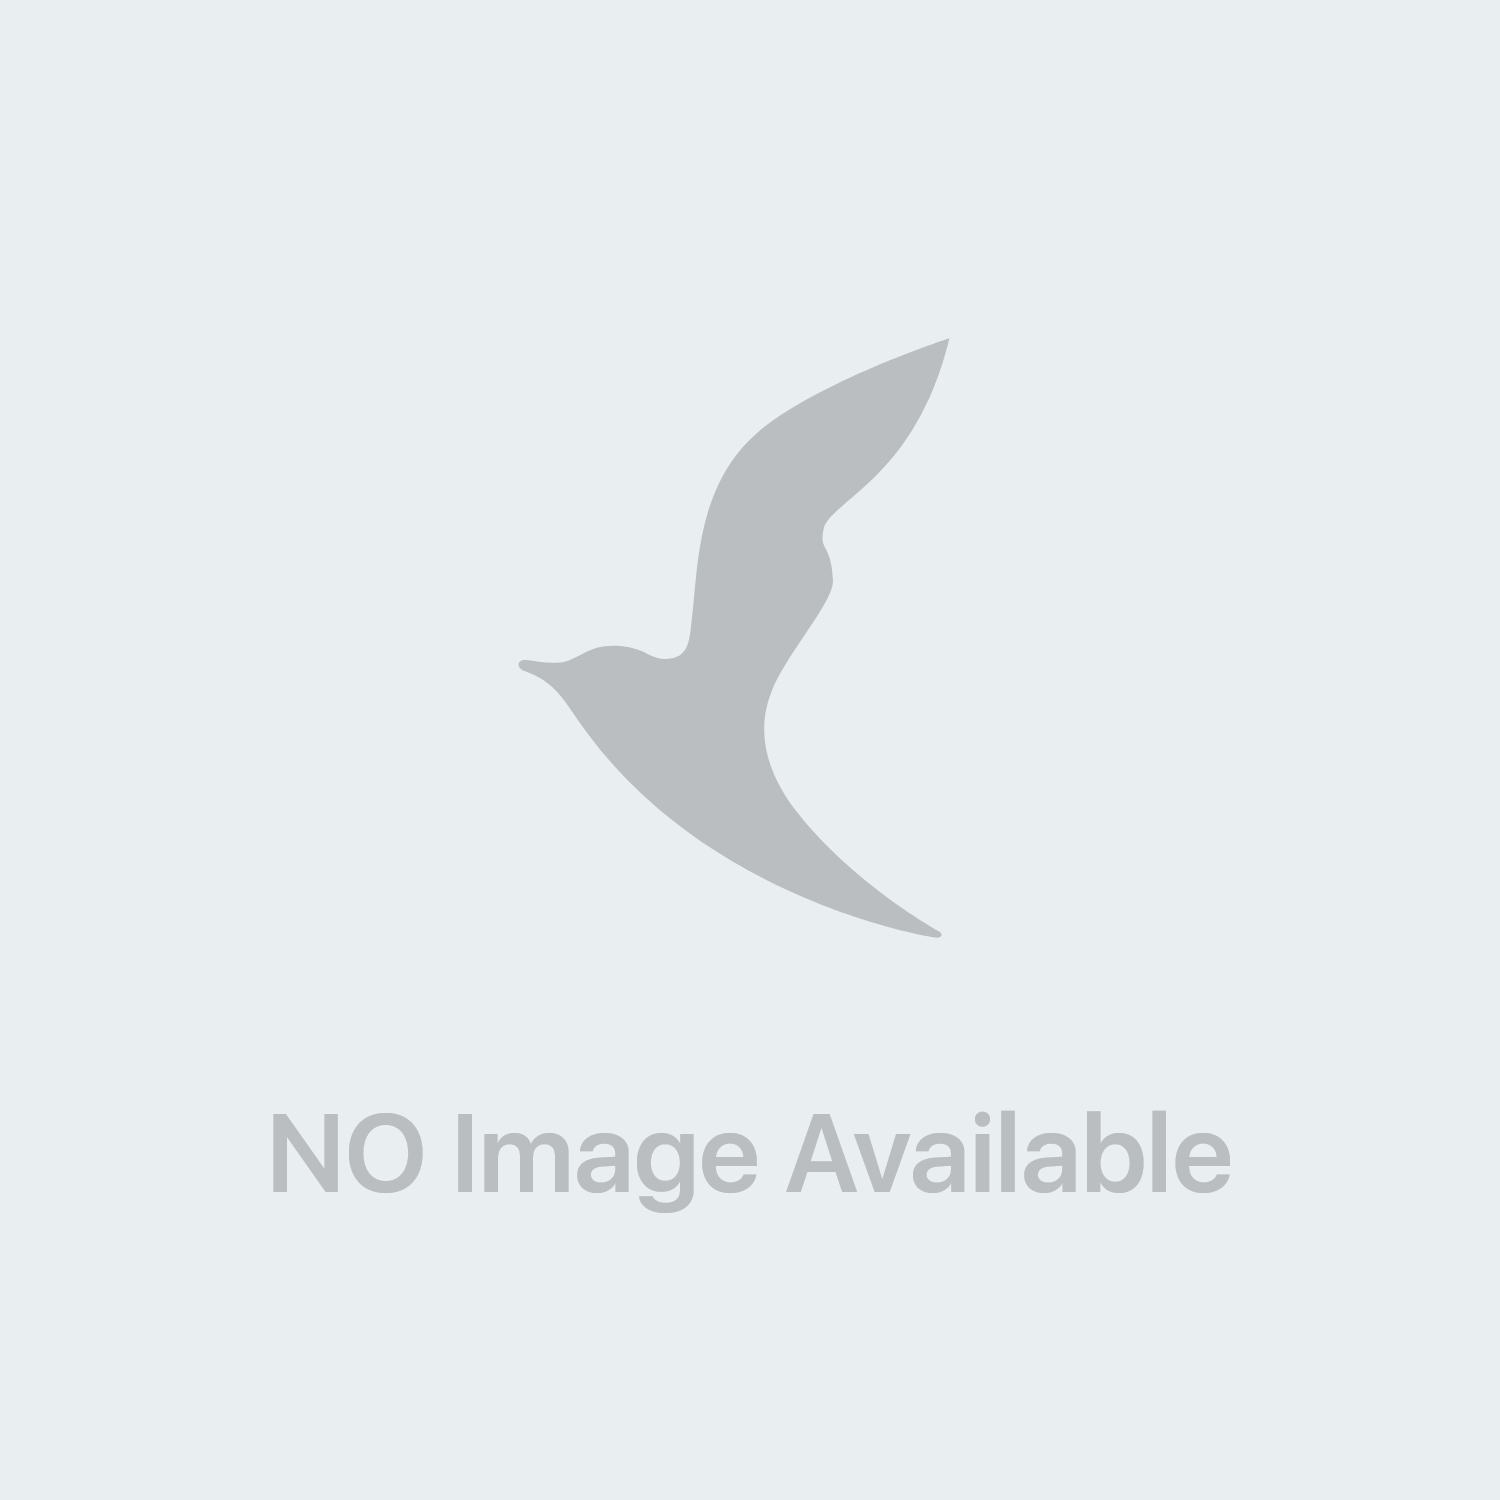 Brufedol 400 mg Ibuprofene Analgesico 10 Compresse Rivestite